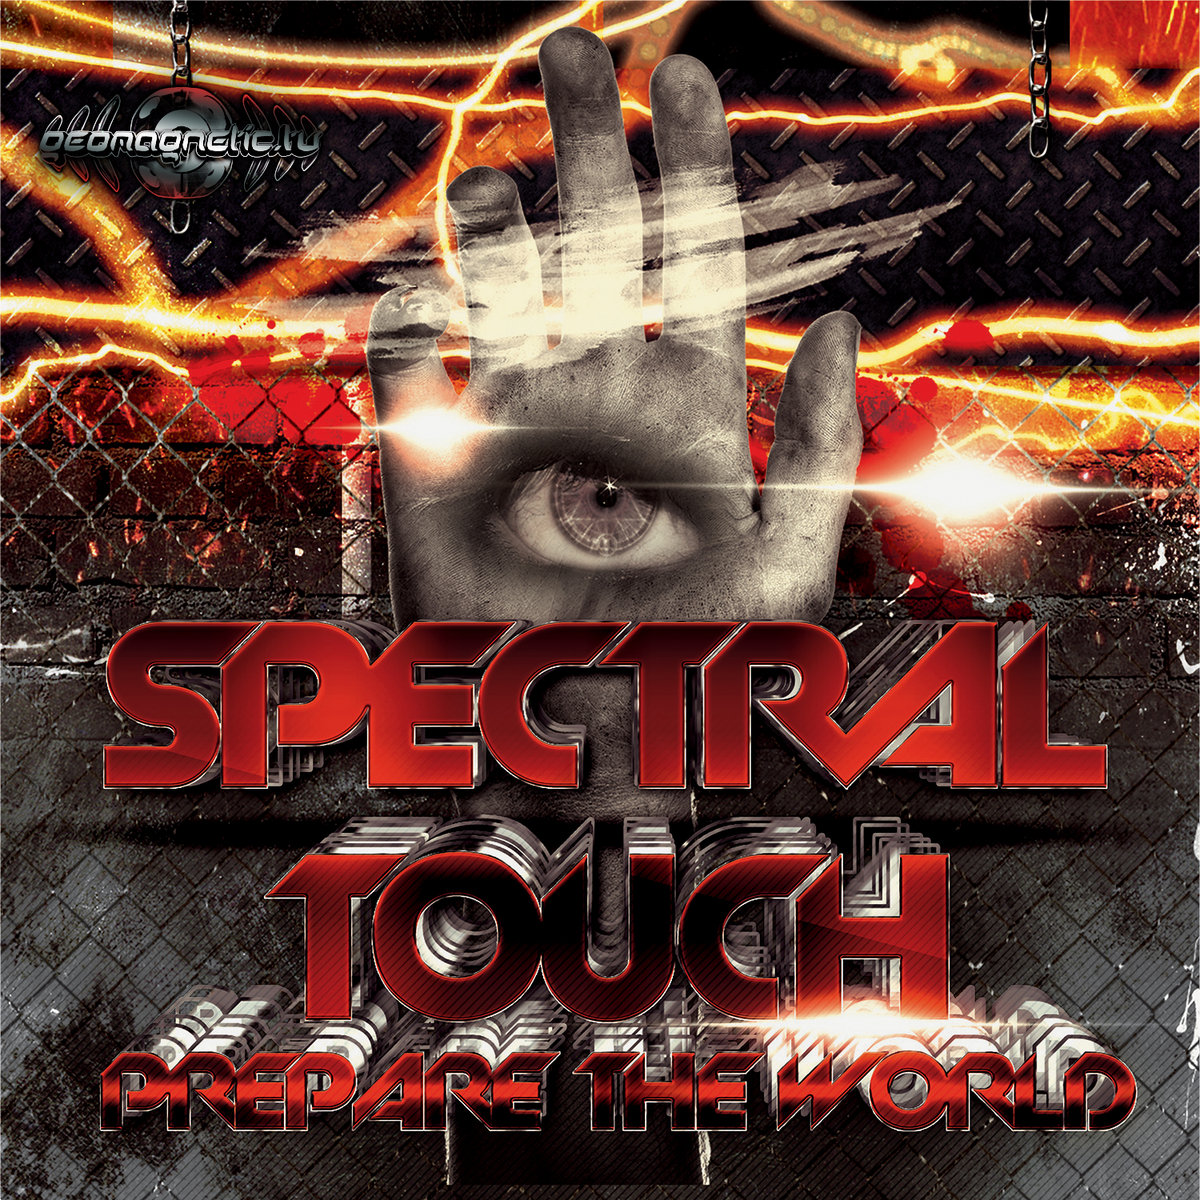 Spectral Touch - Masters of Psytrance @ 'Prepare the World' album (electronic, goa)